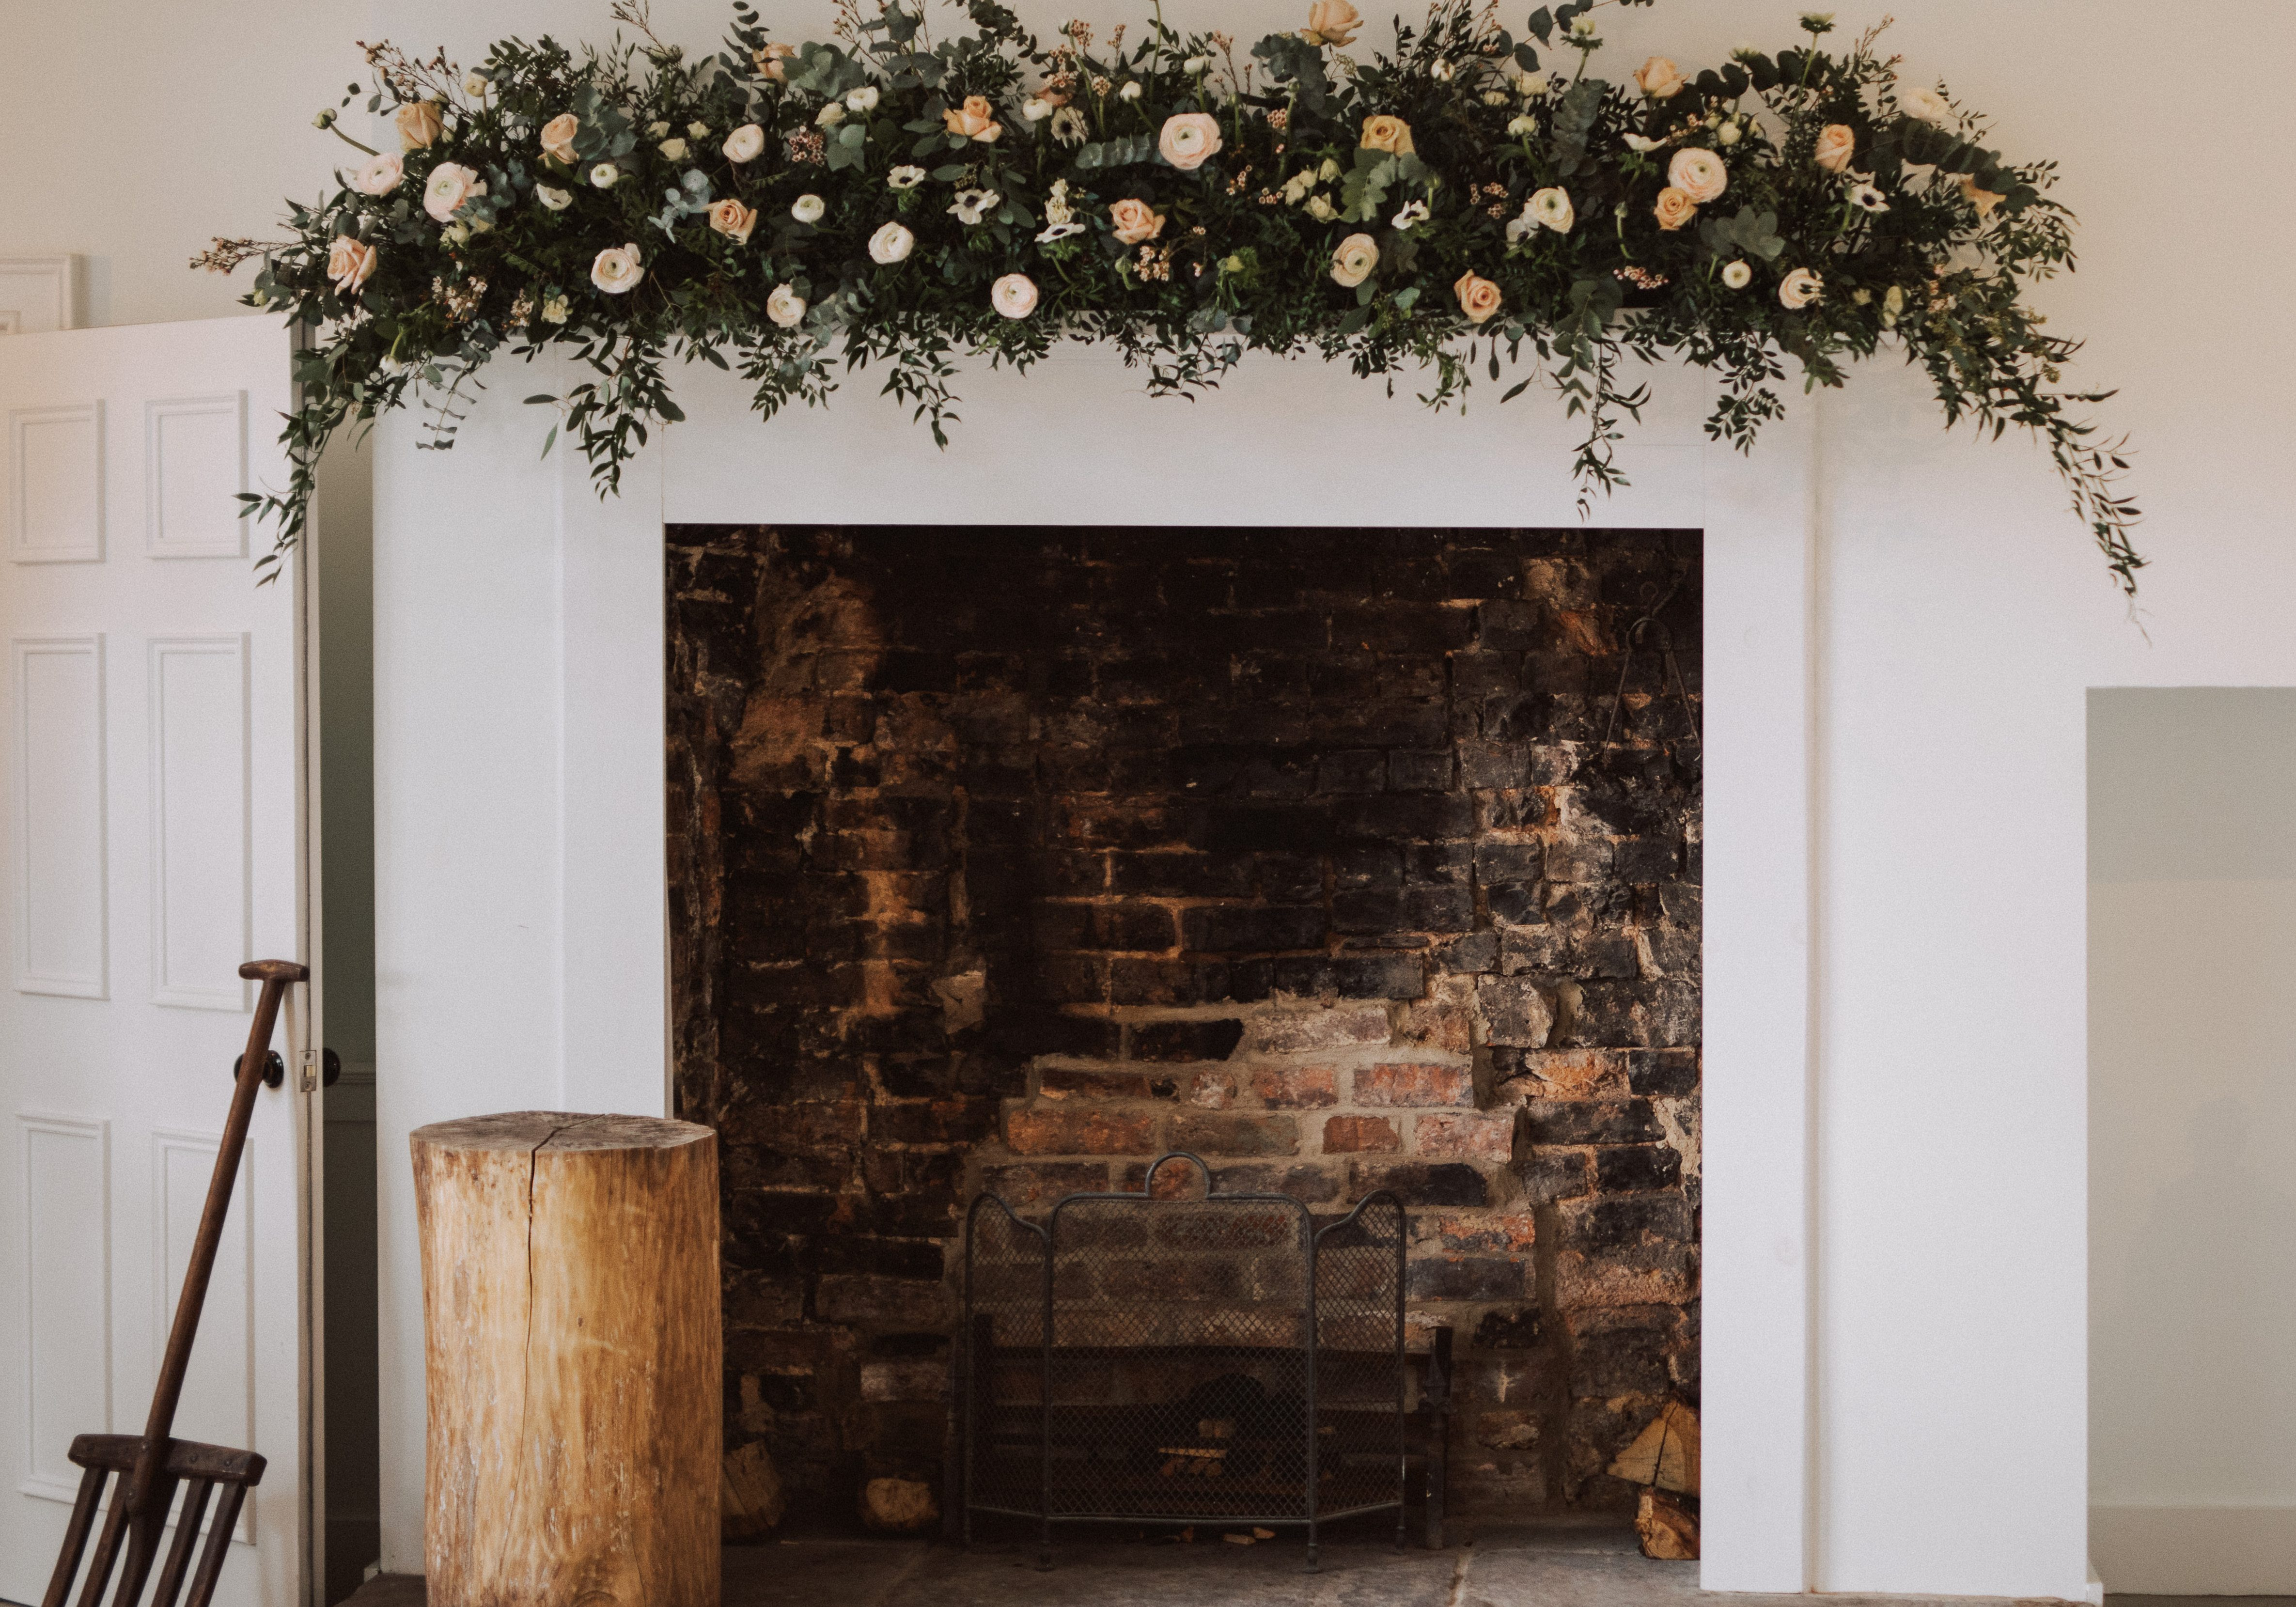 Fireplace floral installation | A luxury winter wedding at Aswarby Rectory, planned and styled by Mirabella Weddings - UK wedding planner